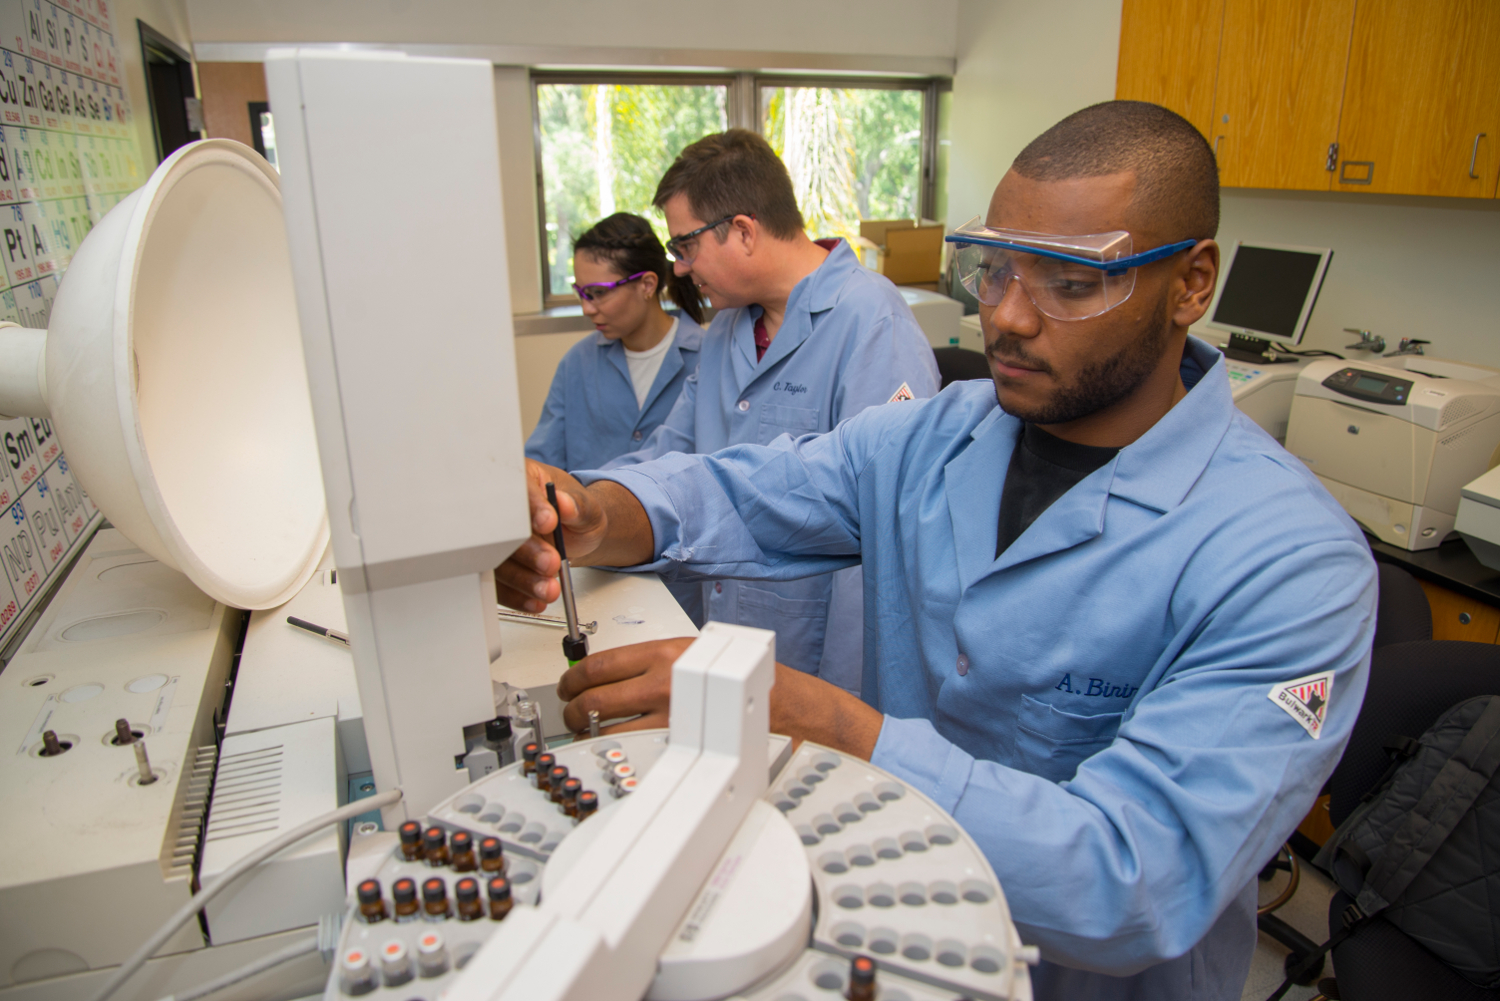 Aseal Birir '18 is a chemistry major and Pomona-Pitzer Sagehens football player who got first-hand research experience in the...